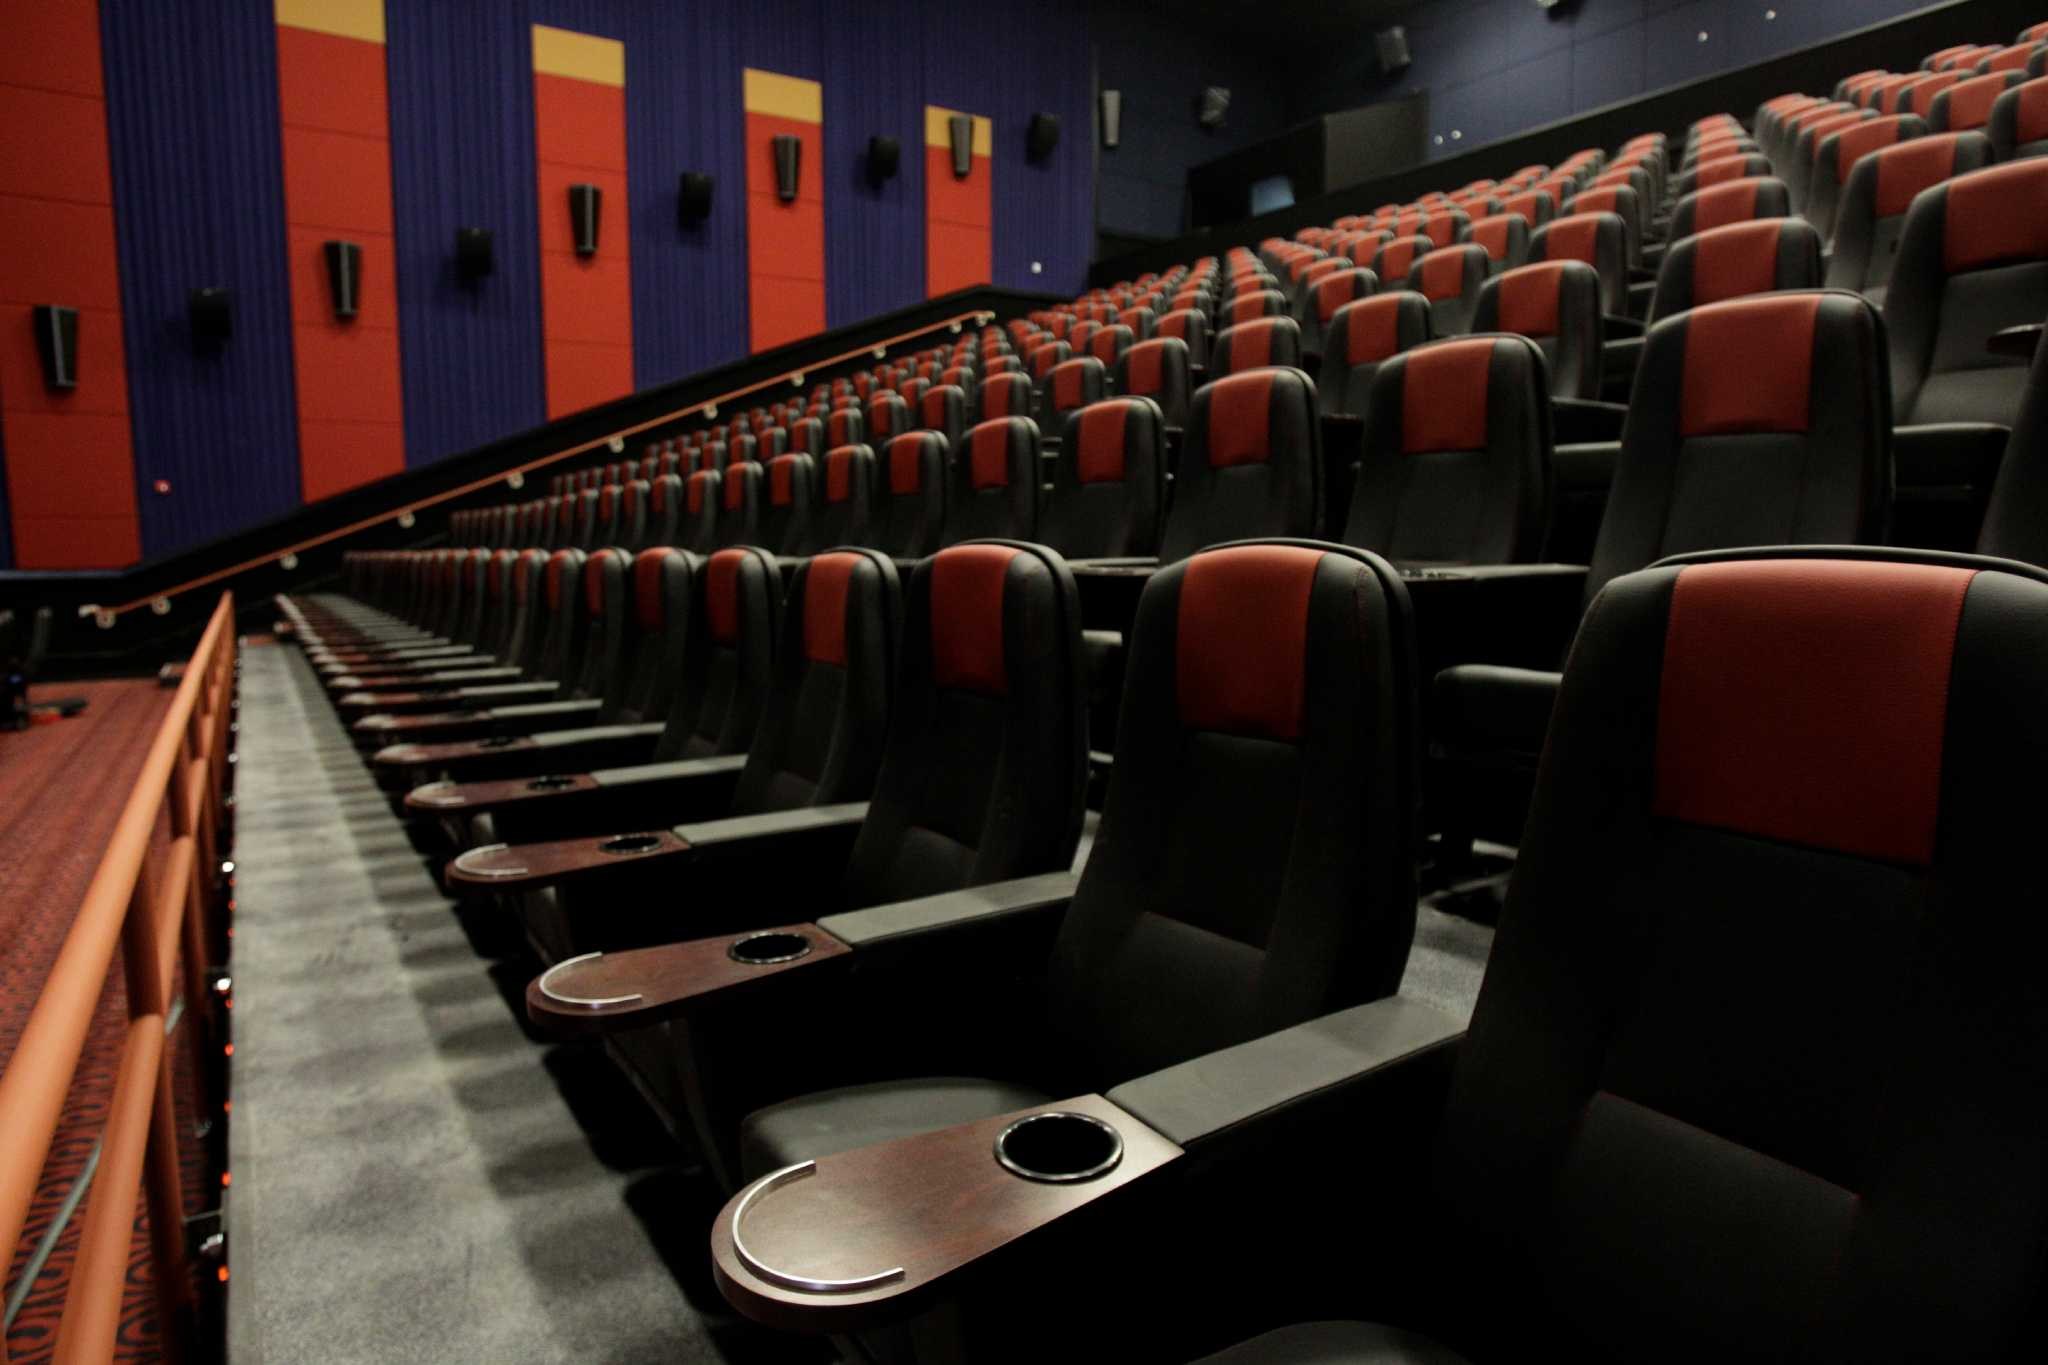 history of movie theaters in louisiana and the surrounding area essay Or click here to register if you are a k–12 educator or student, registration is free and simple and grants you exclusive access to all of our online content, including primary sources, essays, videos, and more.